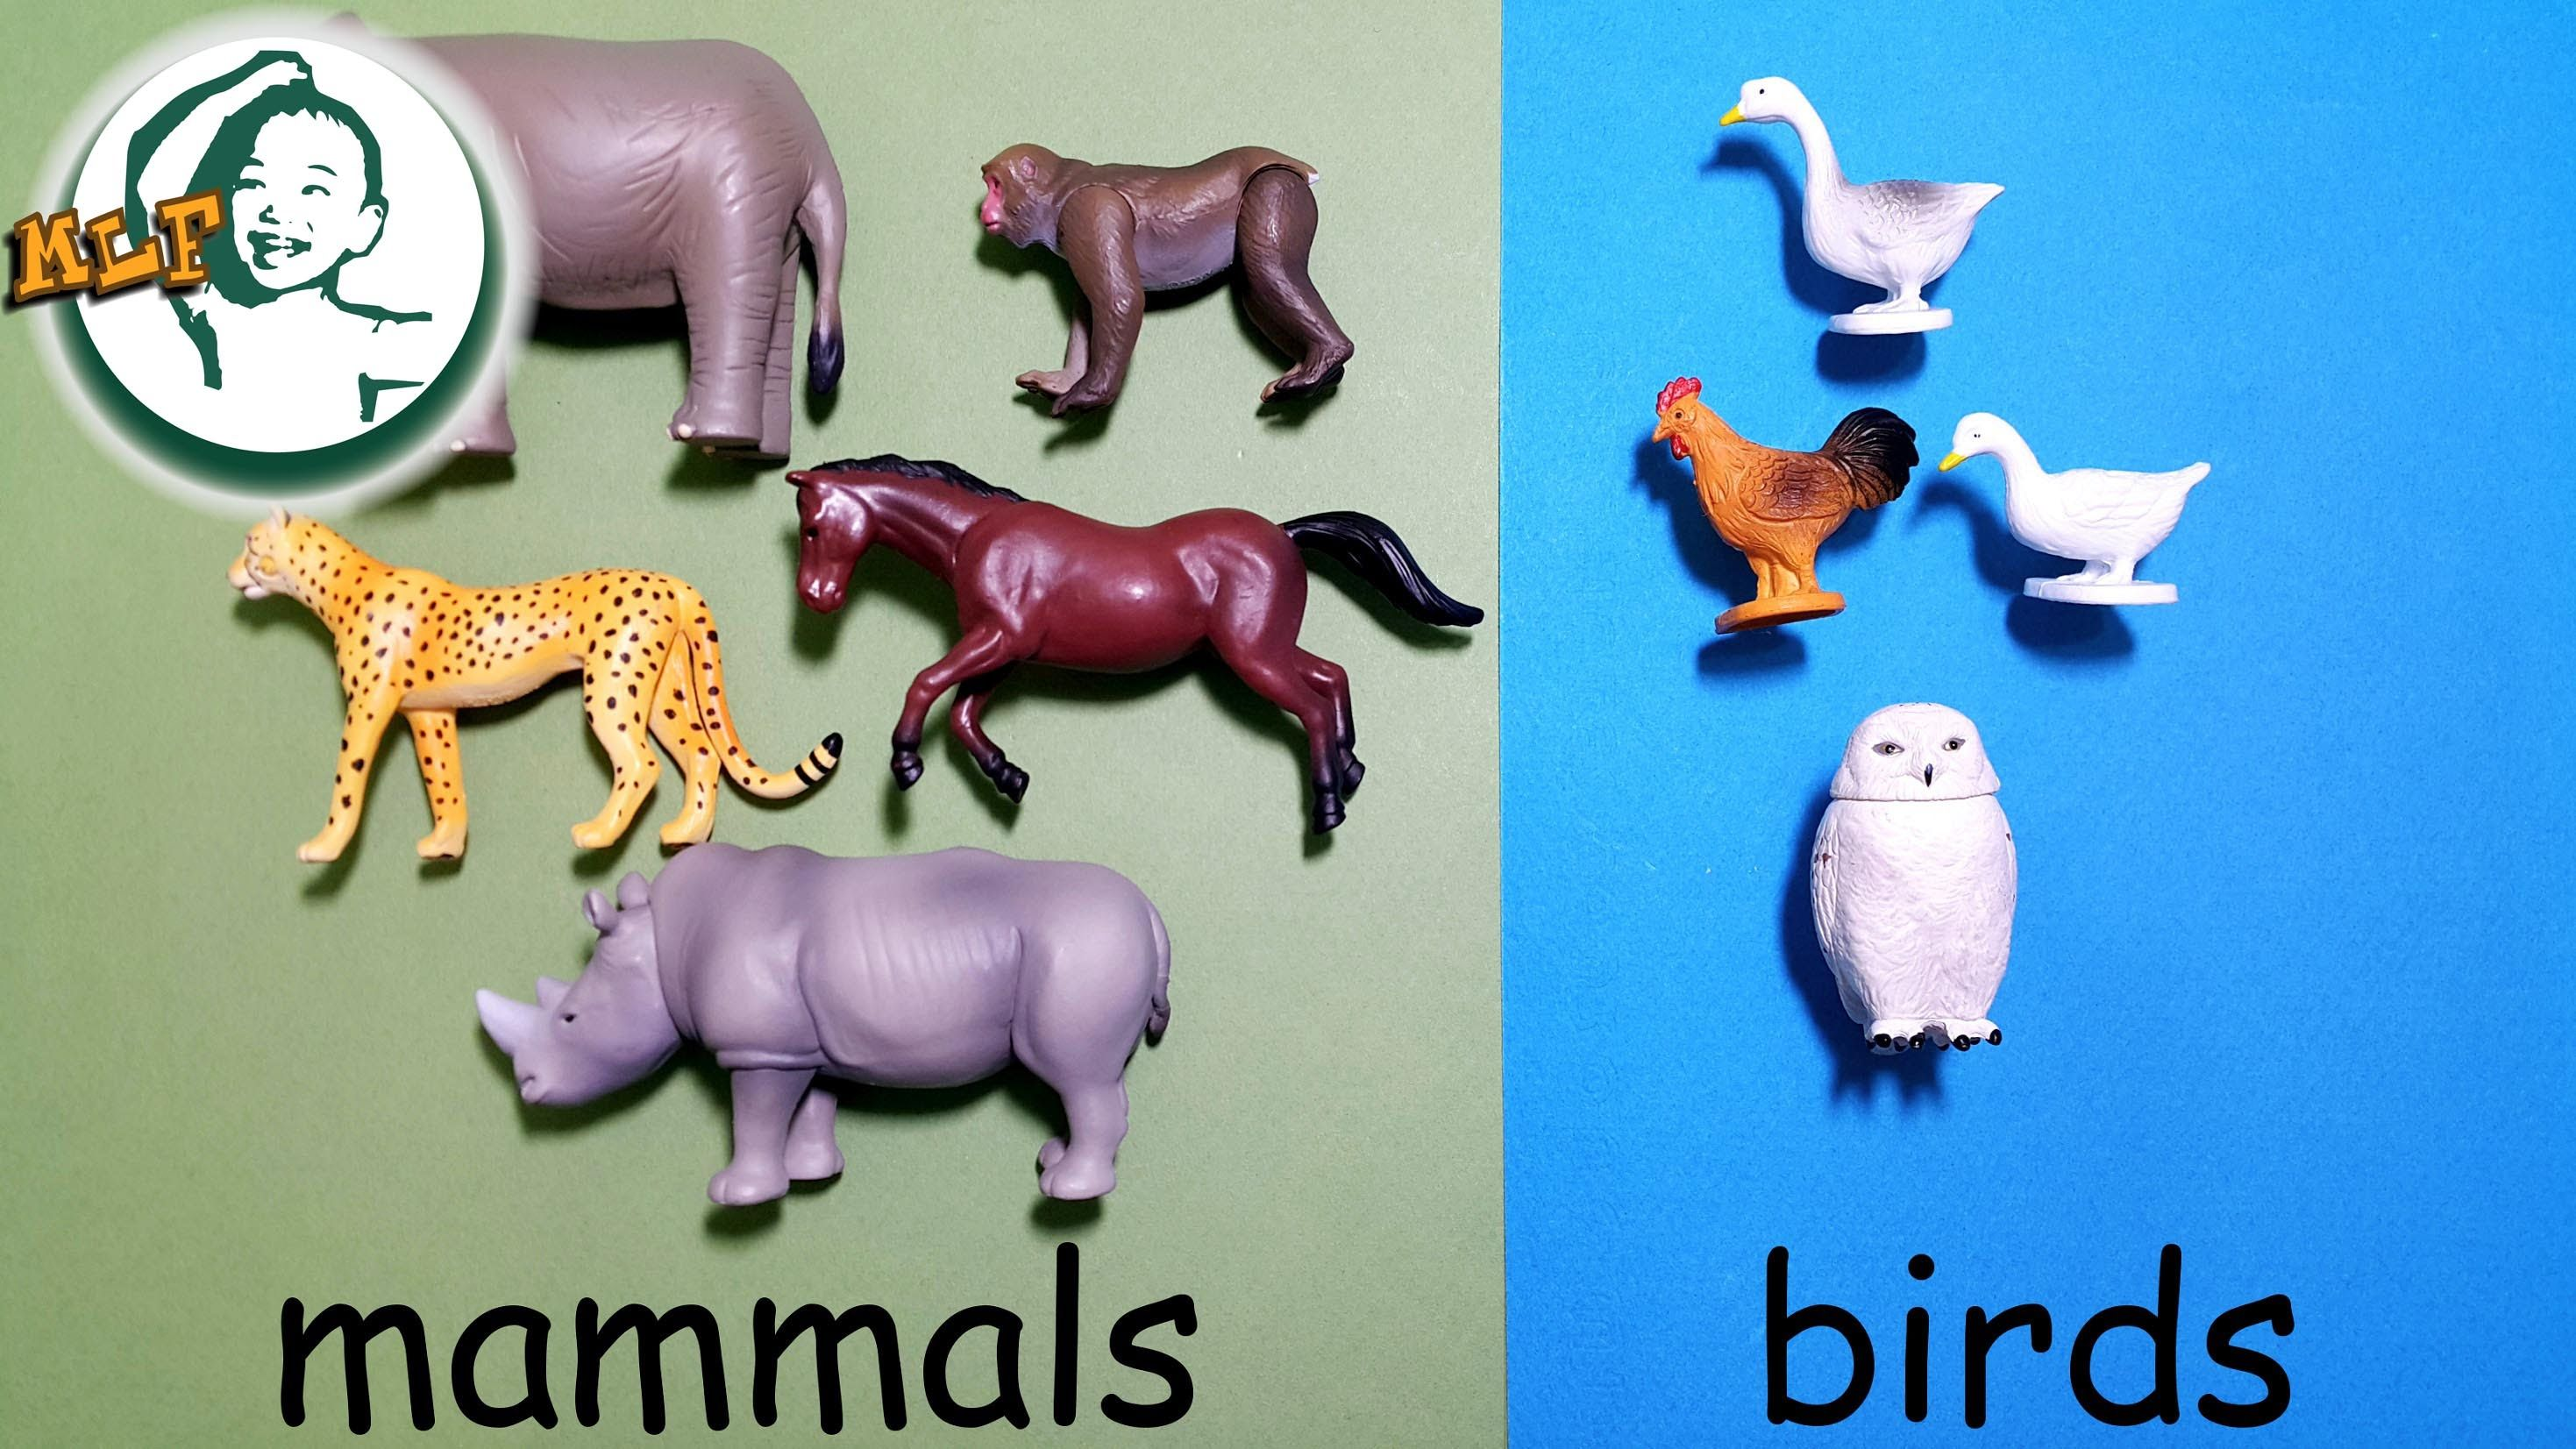 Learn animal classification and animal sounds for kids with Tomy Ania Animal part 2 |アニア アニマルだ